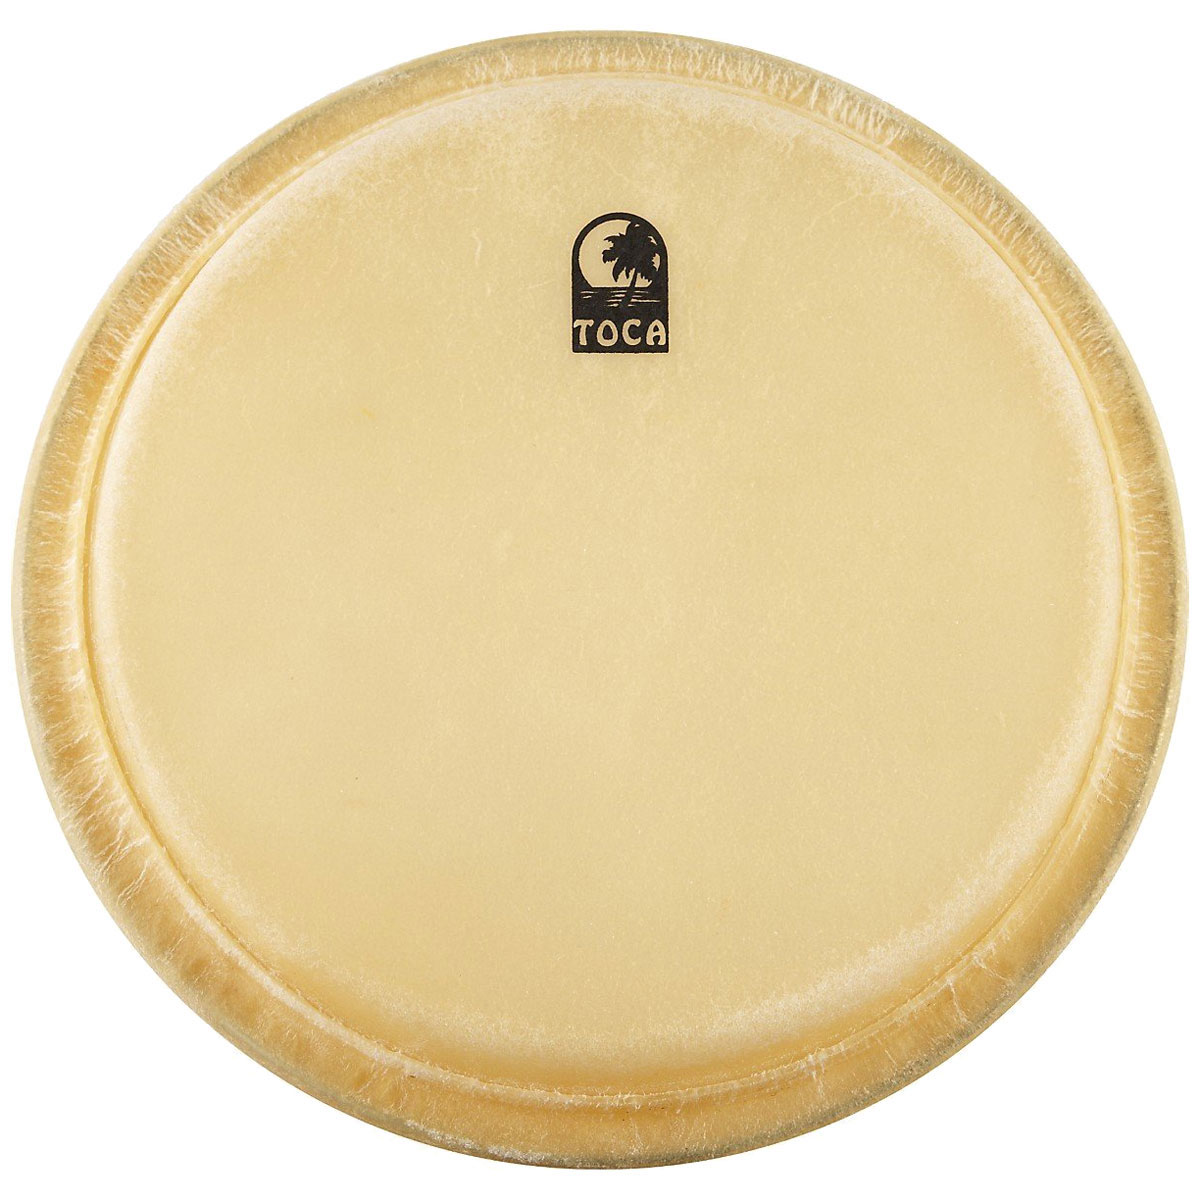 "Toca 11"" Elite Pro Wood Rawhide Conga Drum Head"